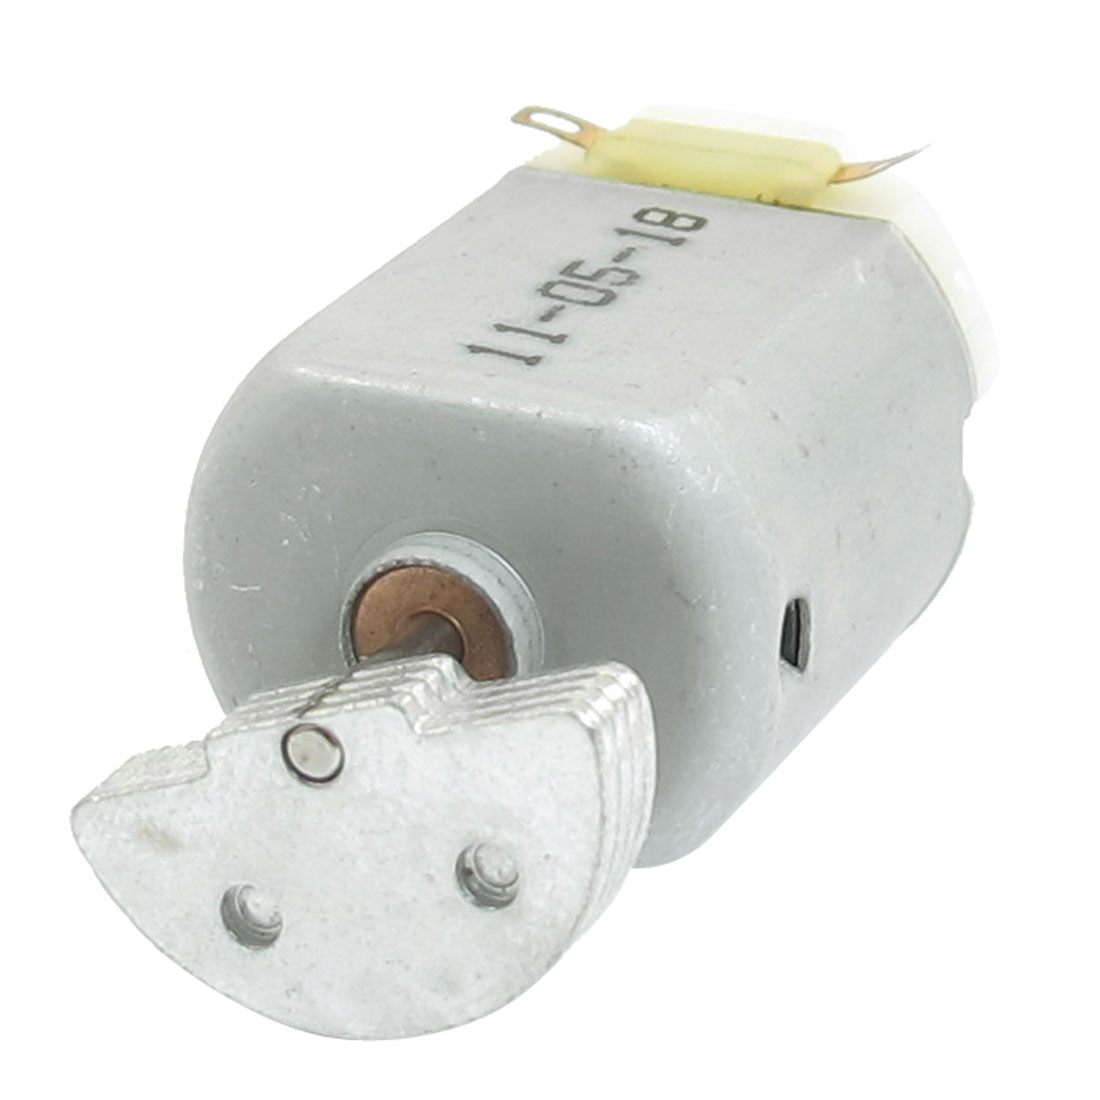 DC-5V-3200RPM-Electric-Mini-Vibrating-Vibration-Motor